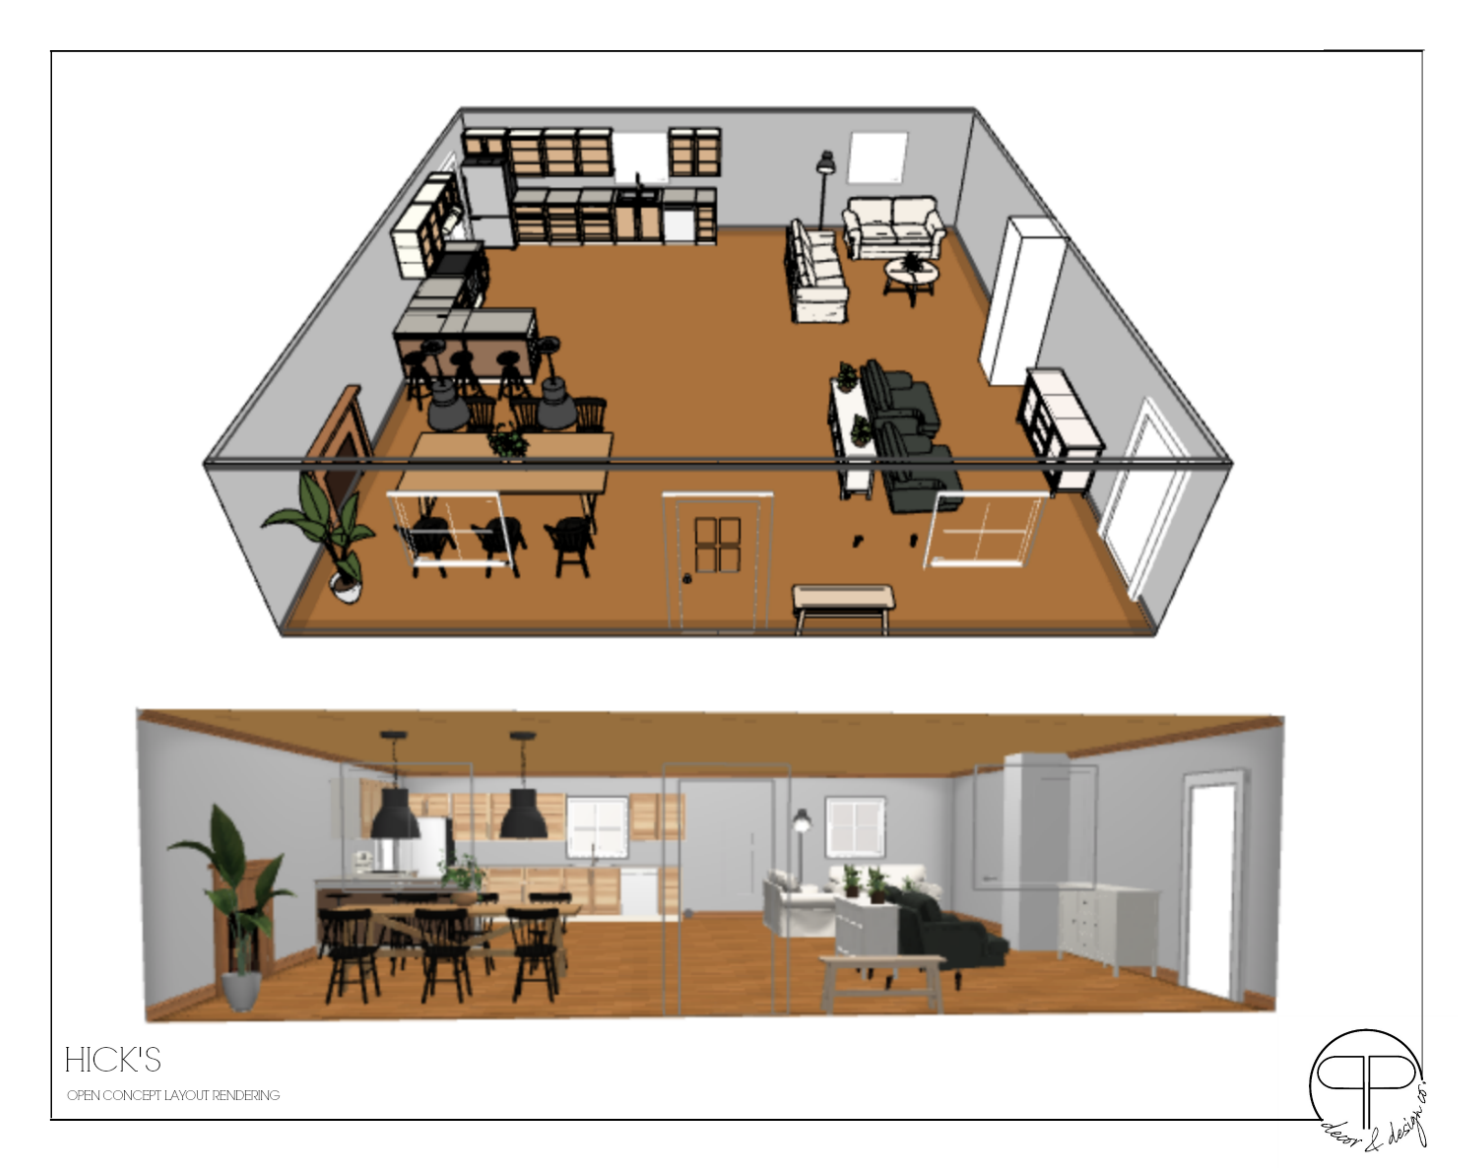 Hicks_Layout_Rendering_1.png